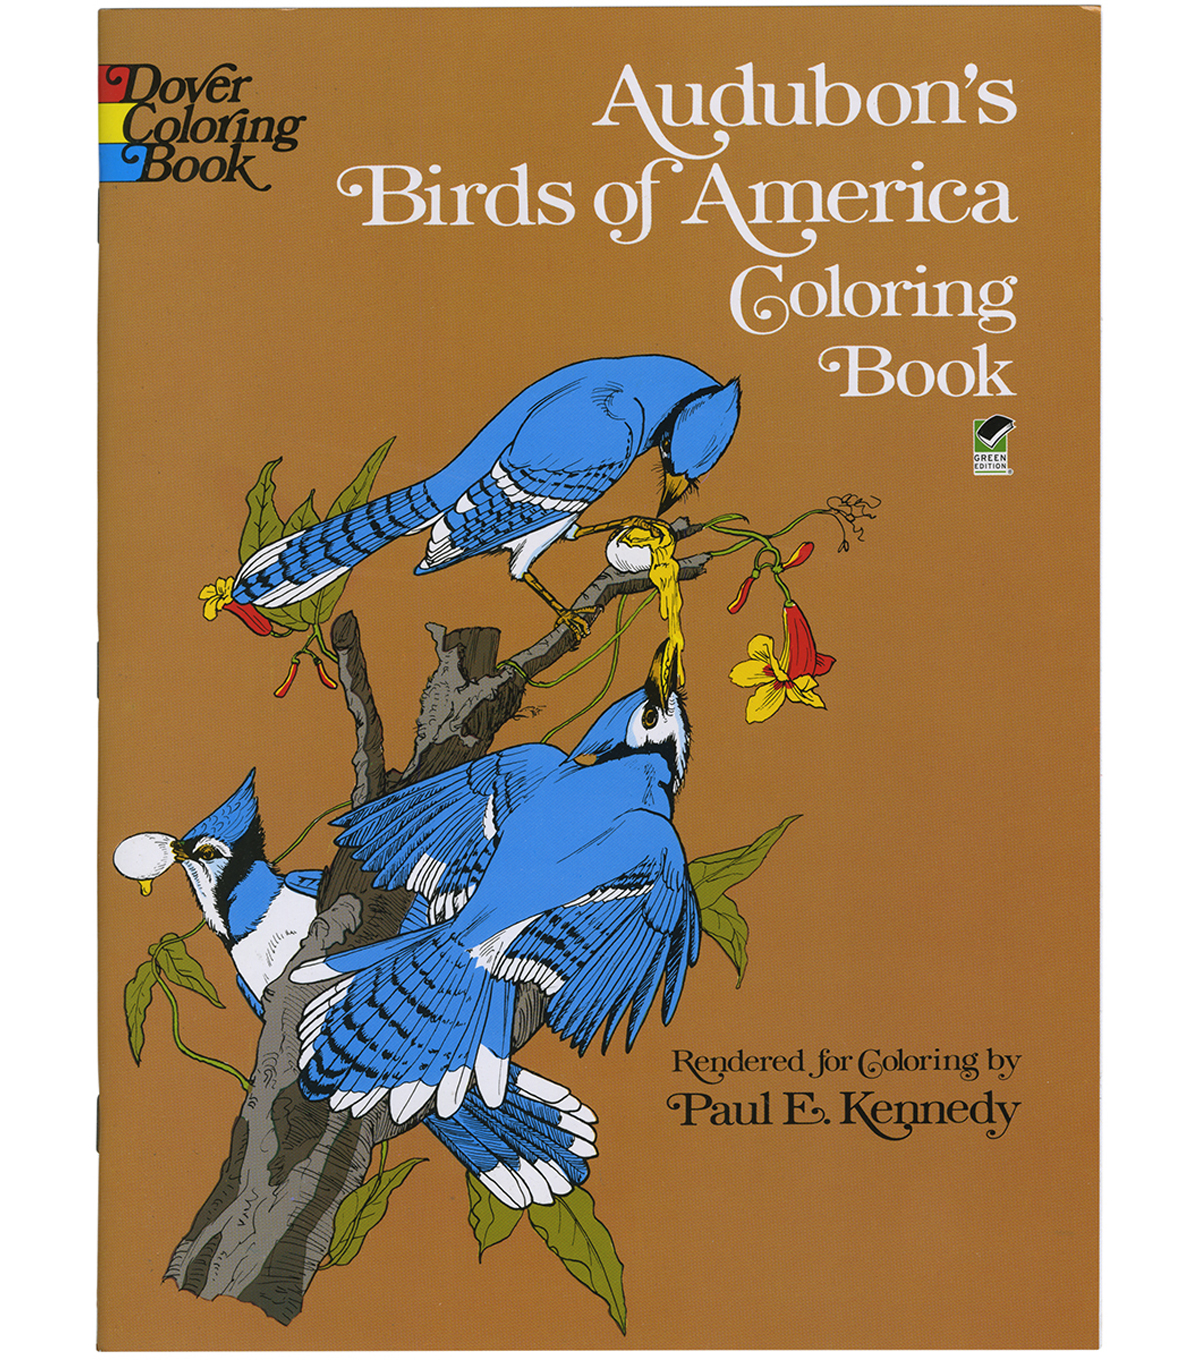 Birds of America Coloring Book for Adults | JOANN